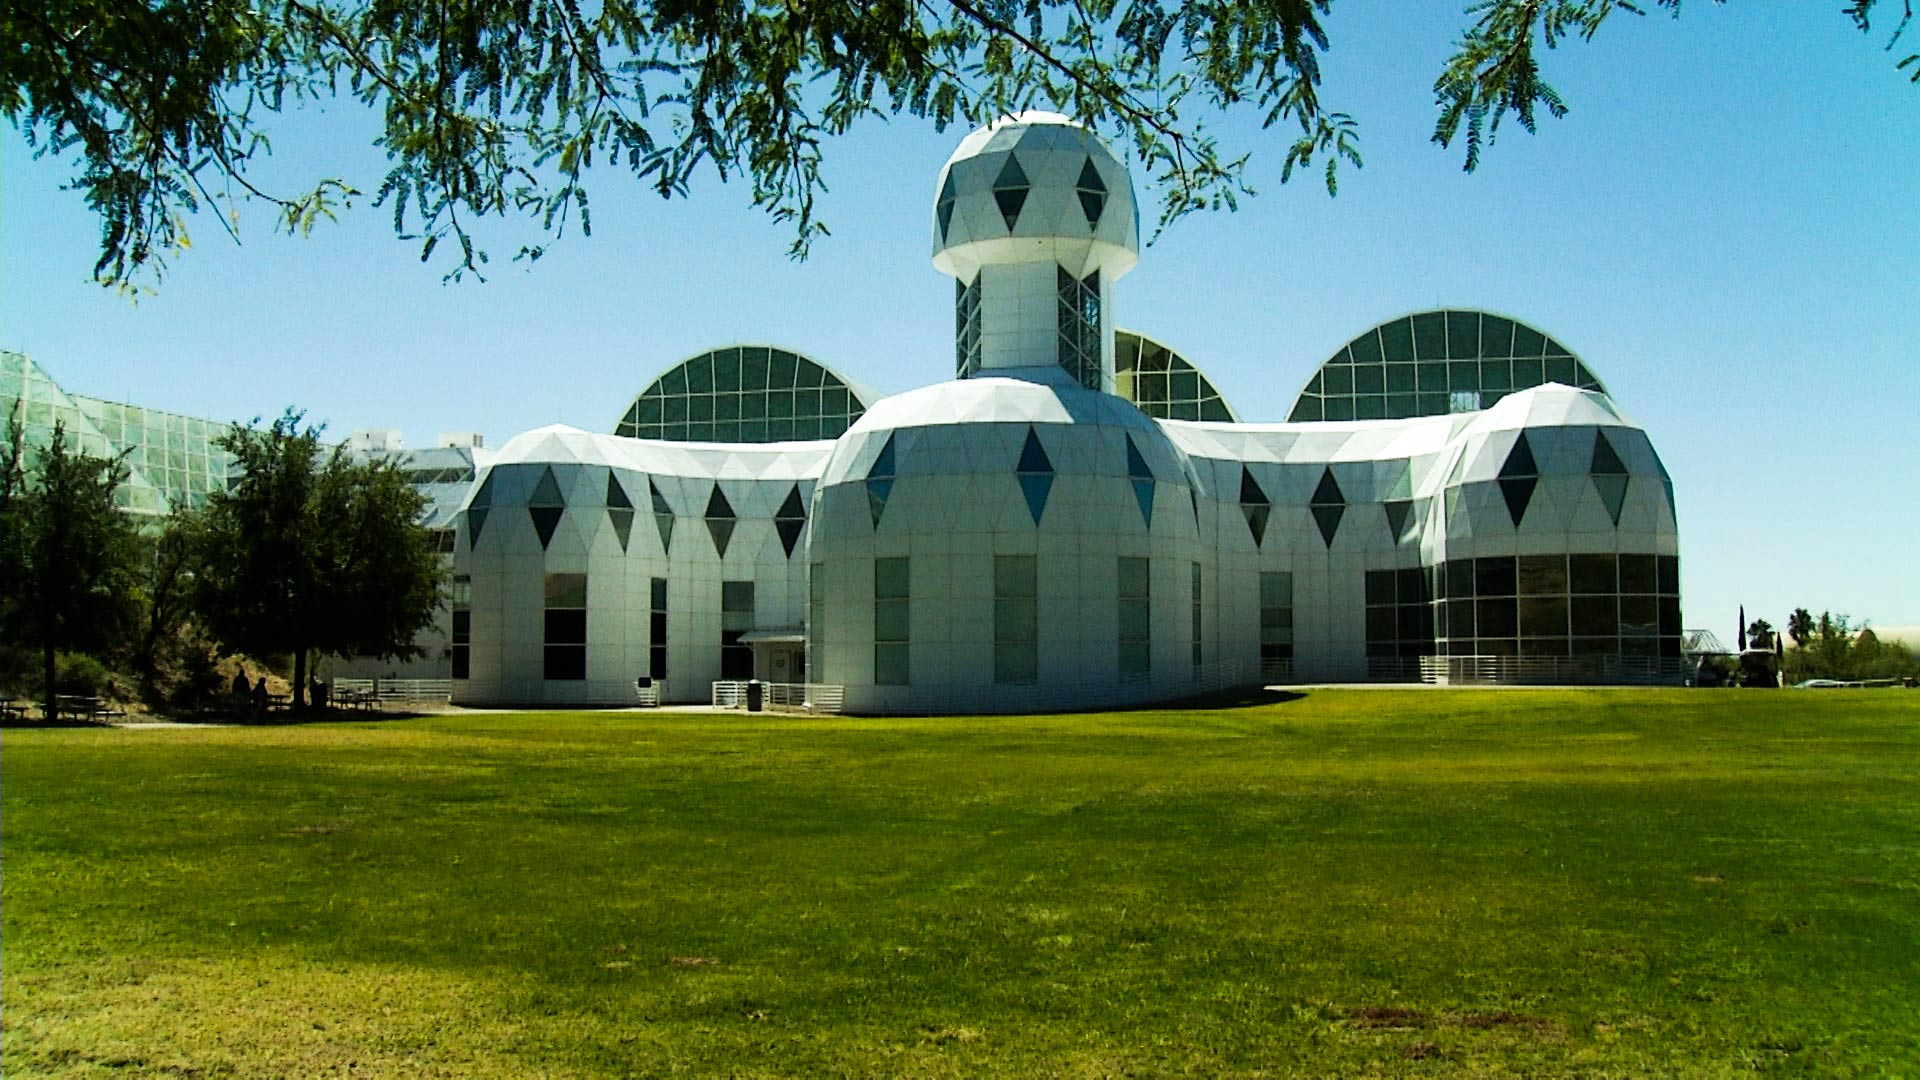 The exterior of the Biosphere 2 facility.